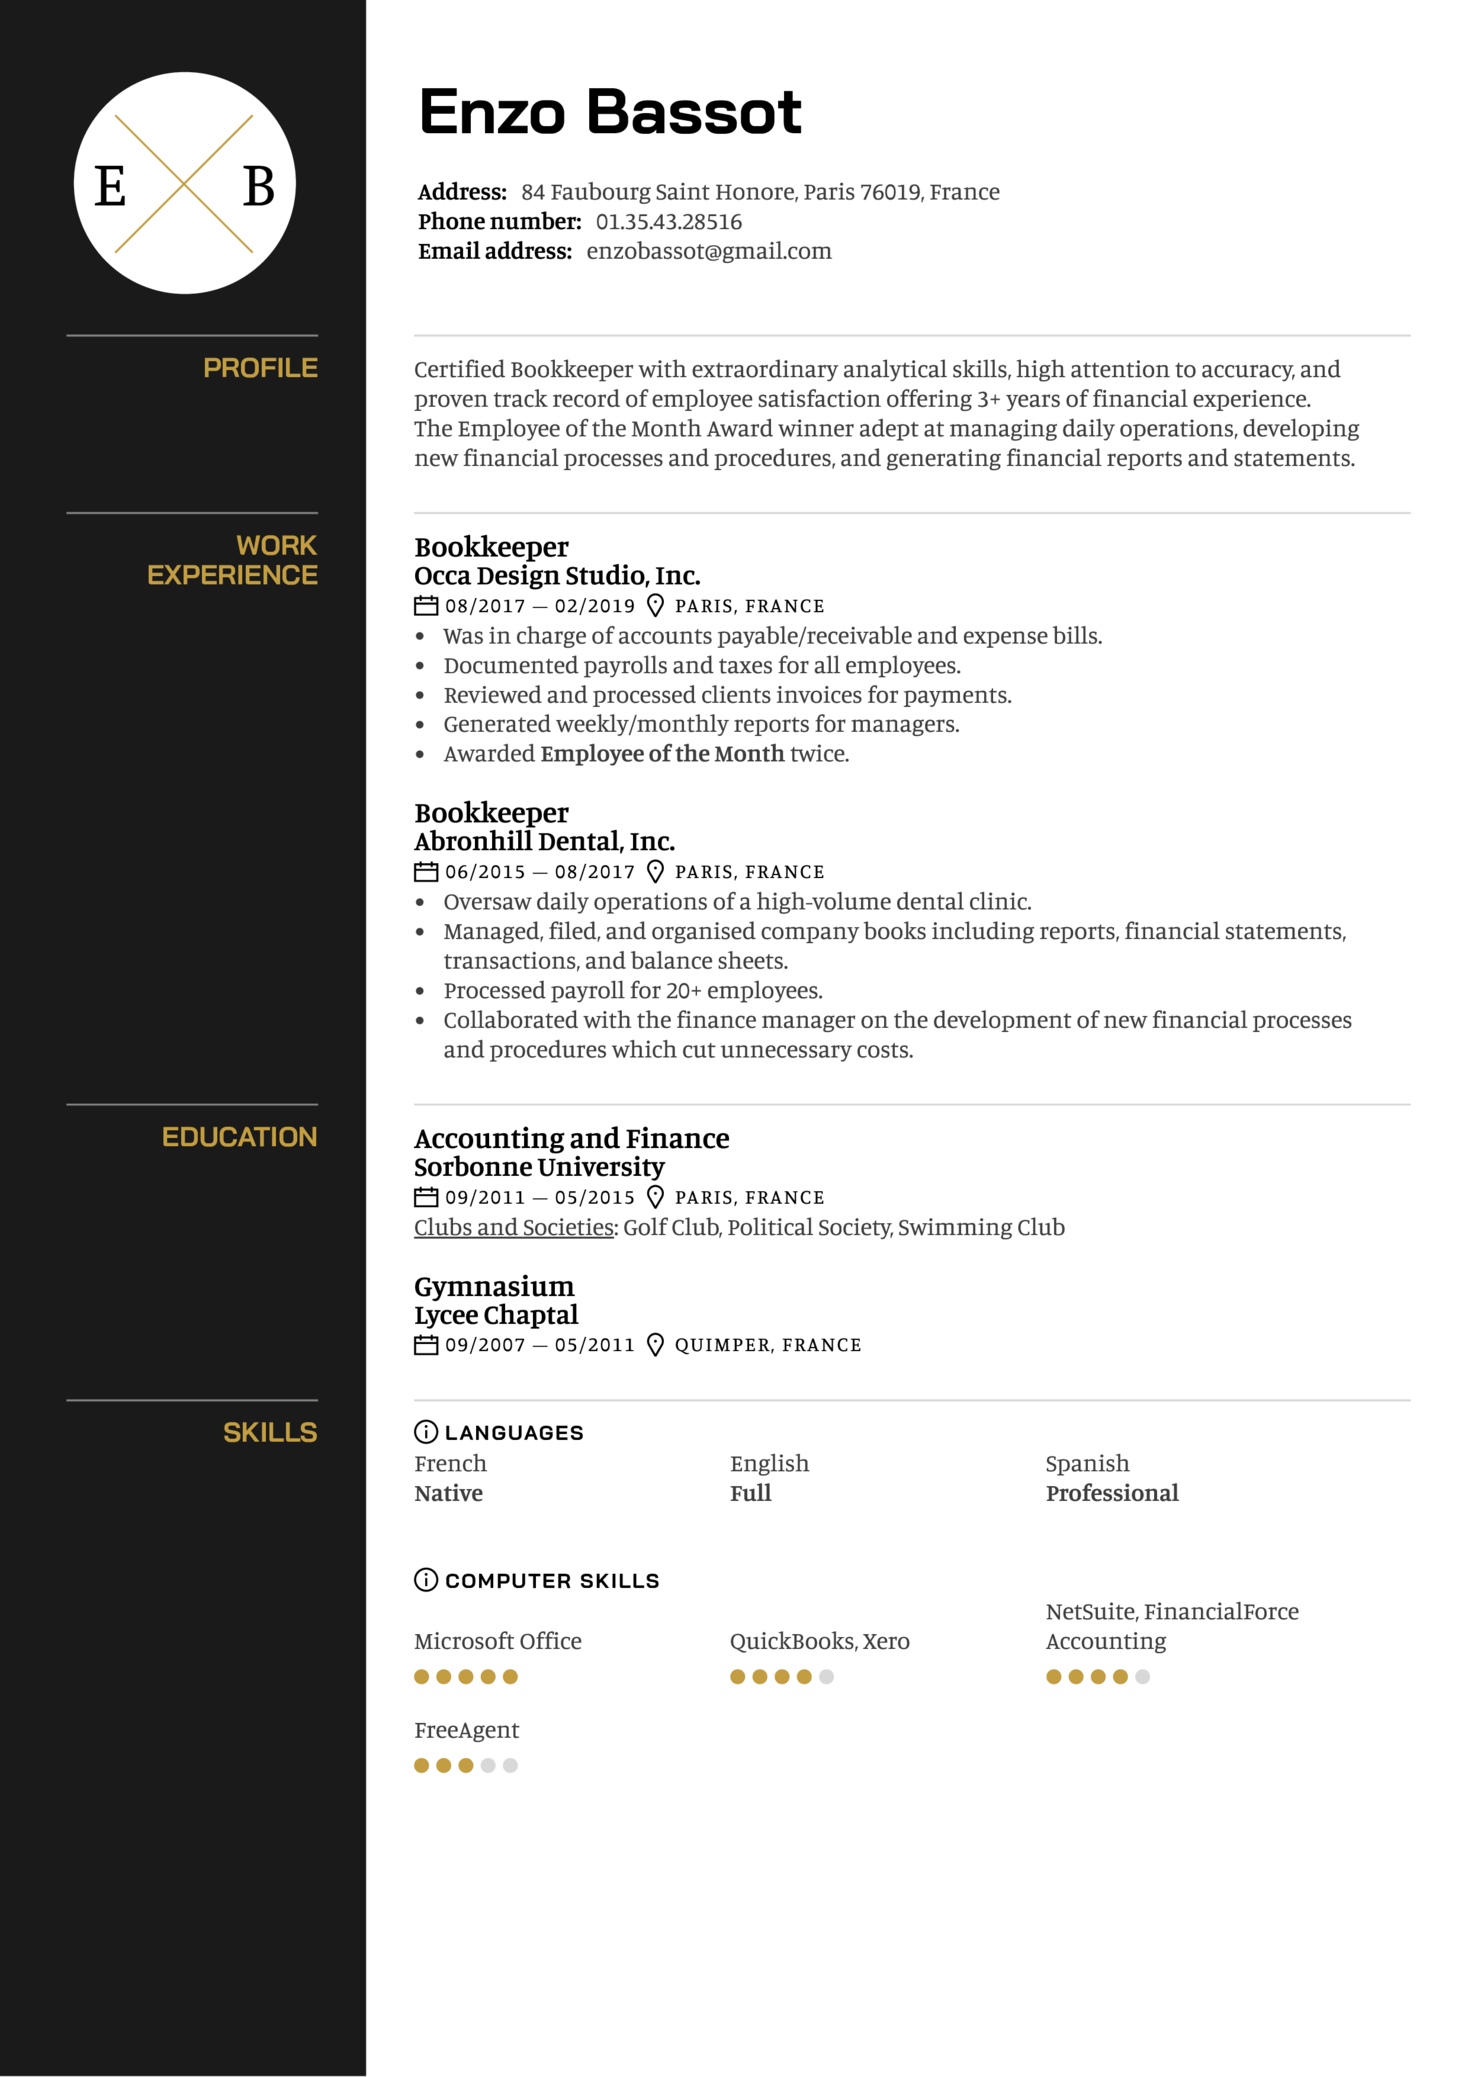 Bookkeeper Resume Example (parte 1)